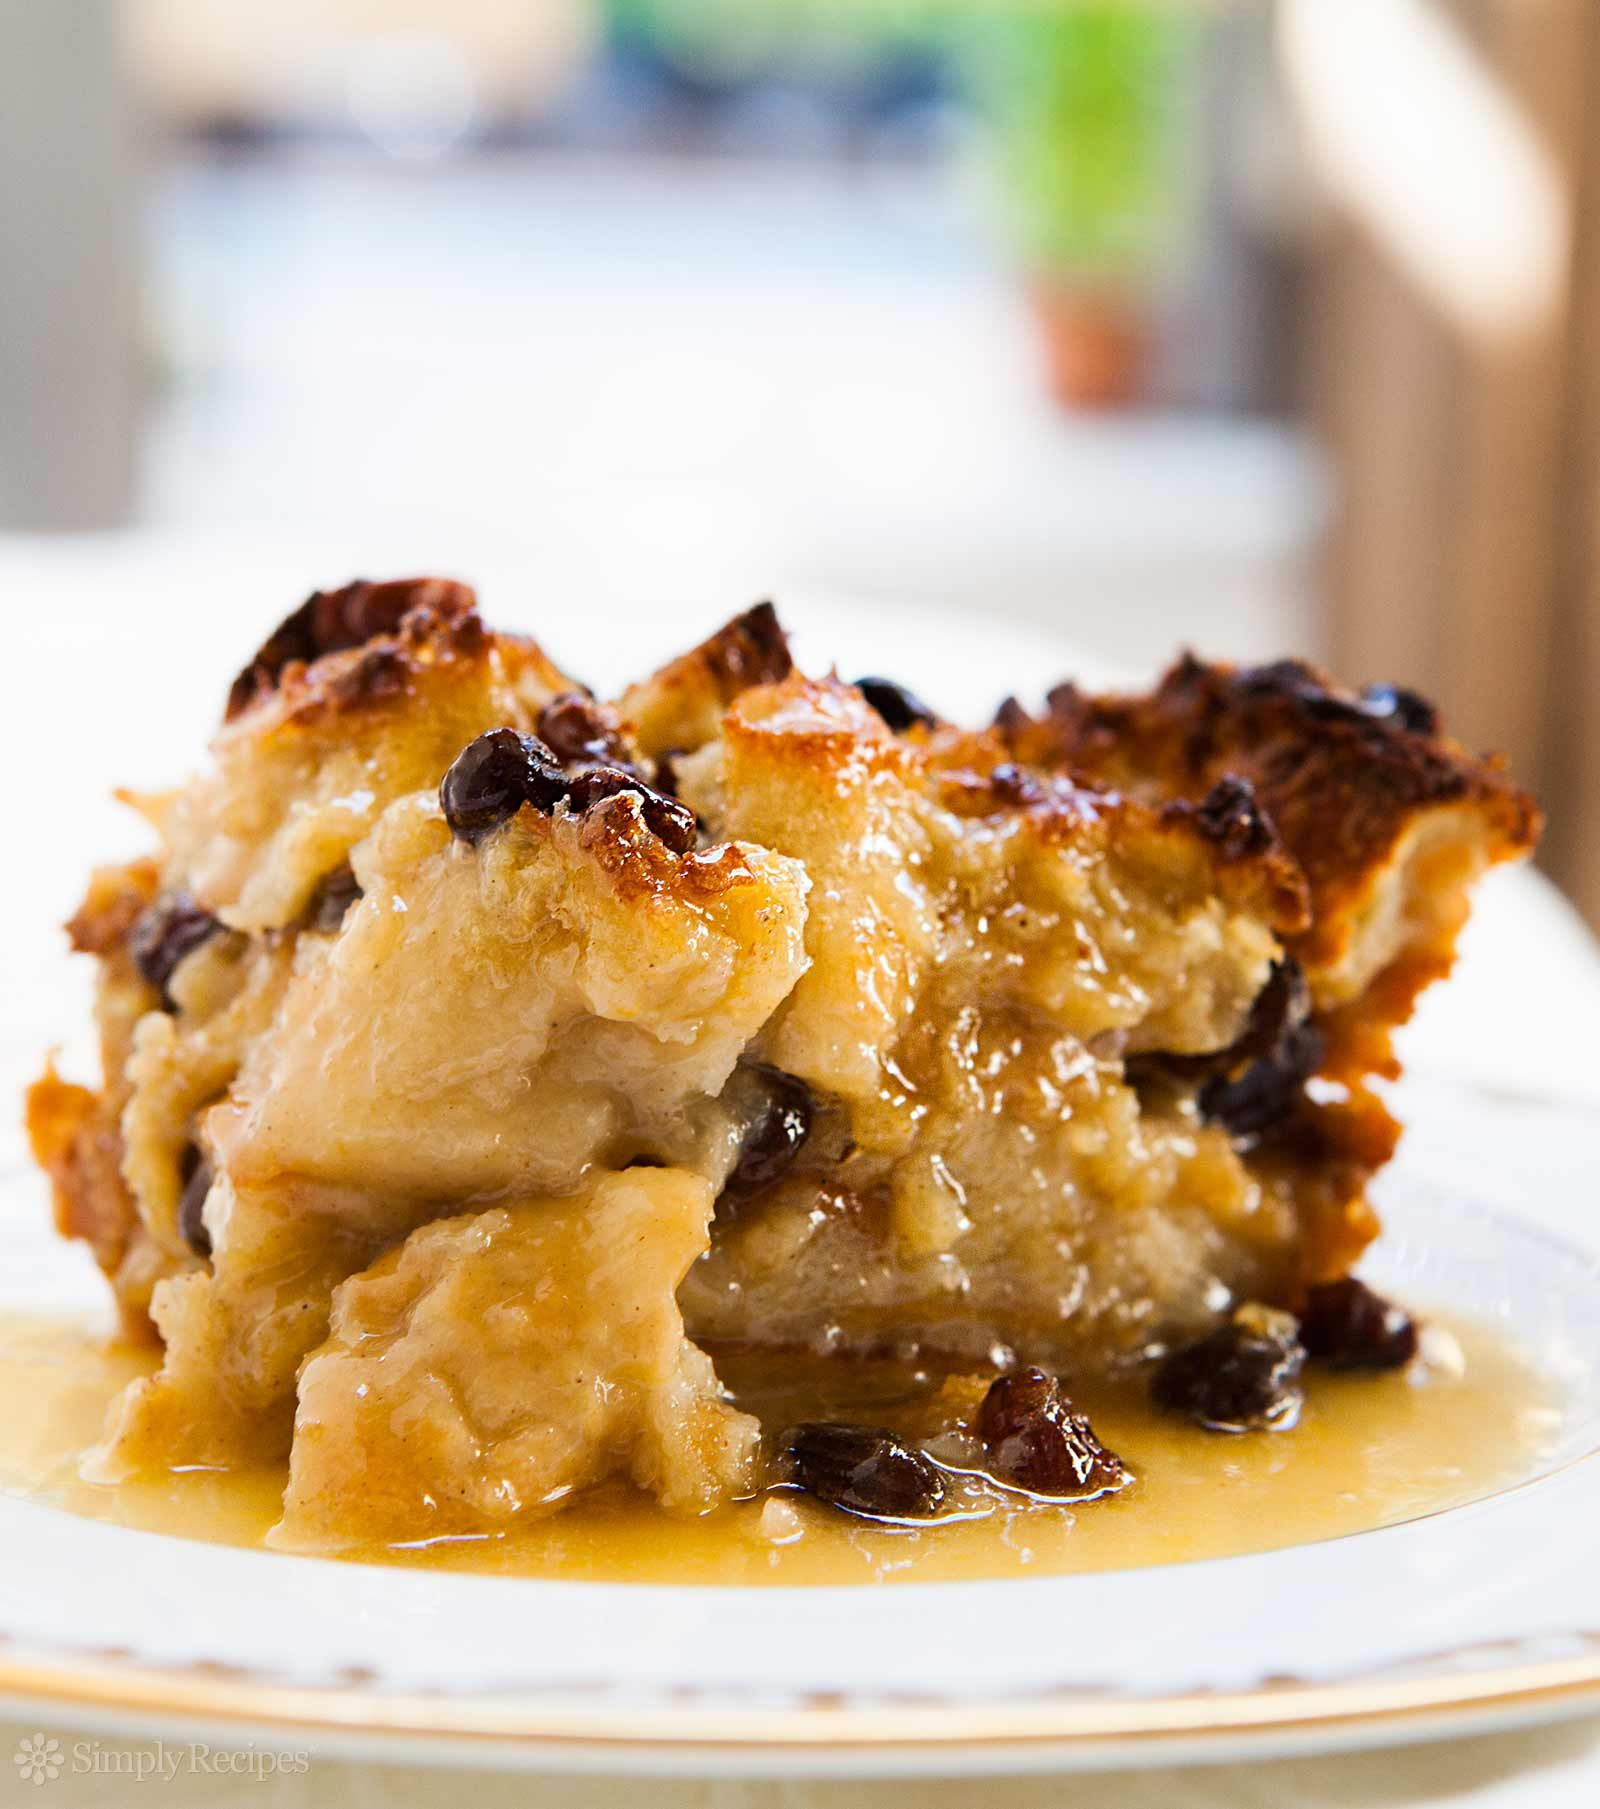 Authentic New Orleans Bread Pudding! With French bread, milk, eggs, sugar, vanilla, spices, and served with a Bourbon sauce. On SimplyRecipes.com